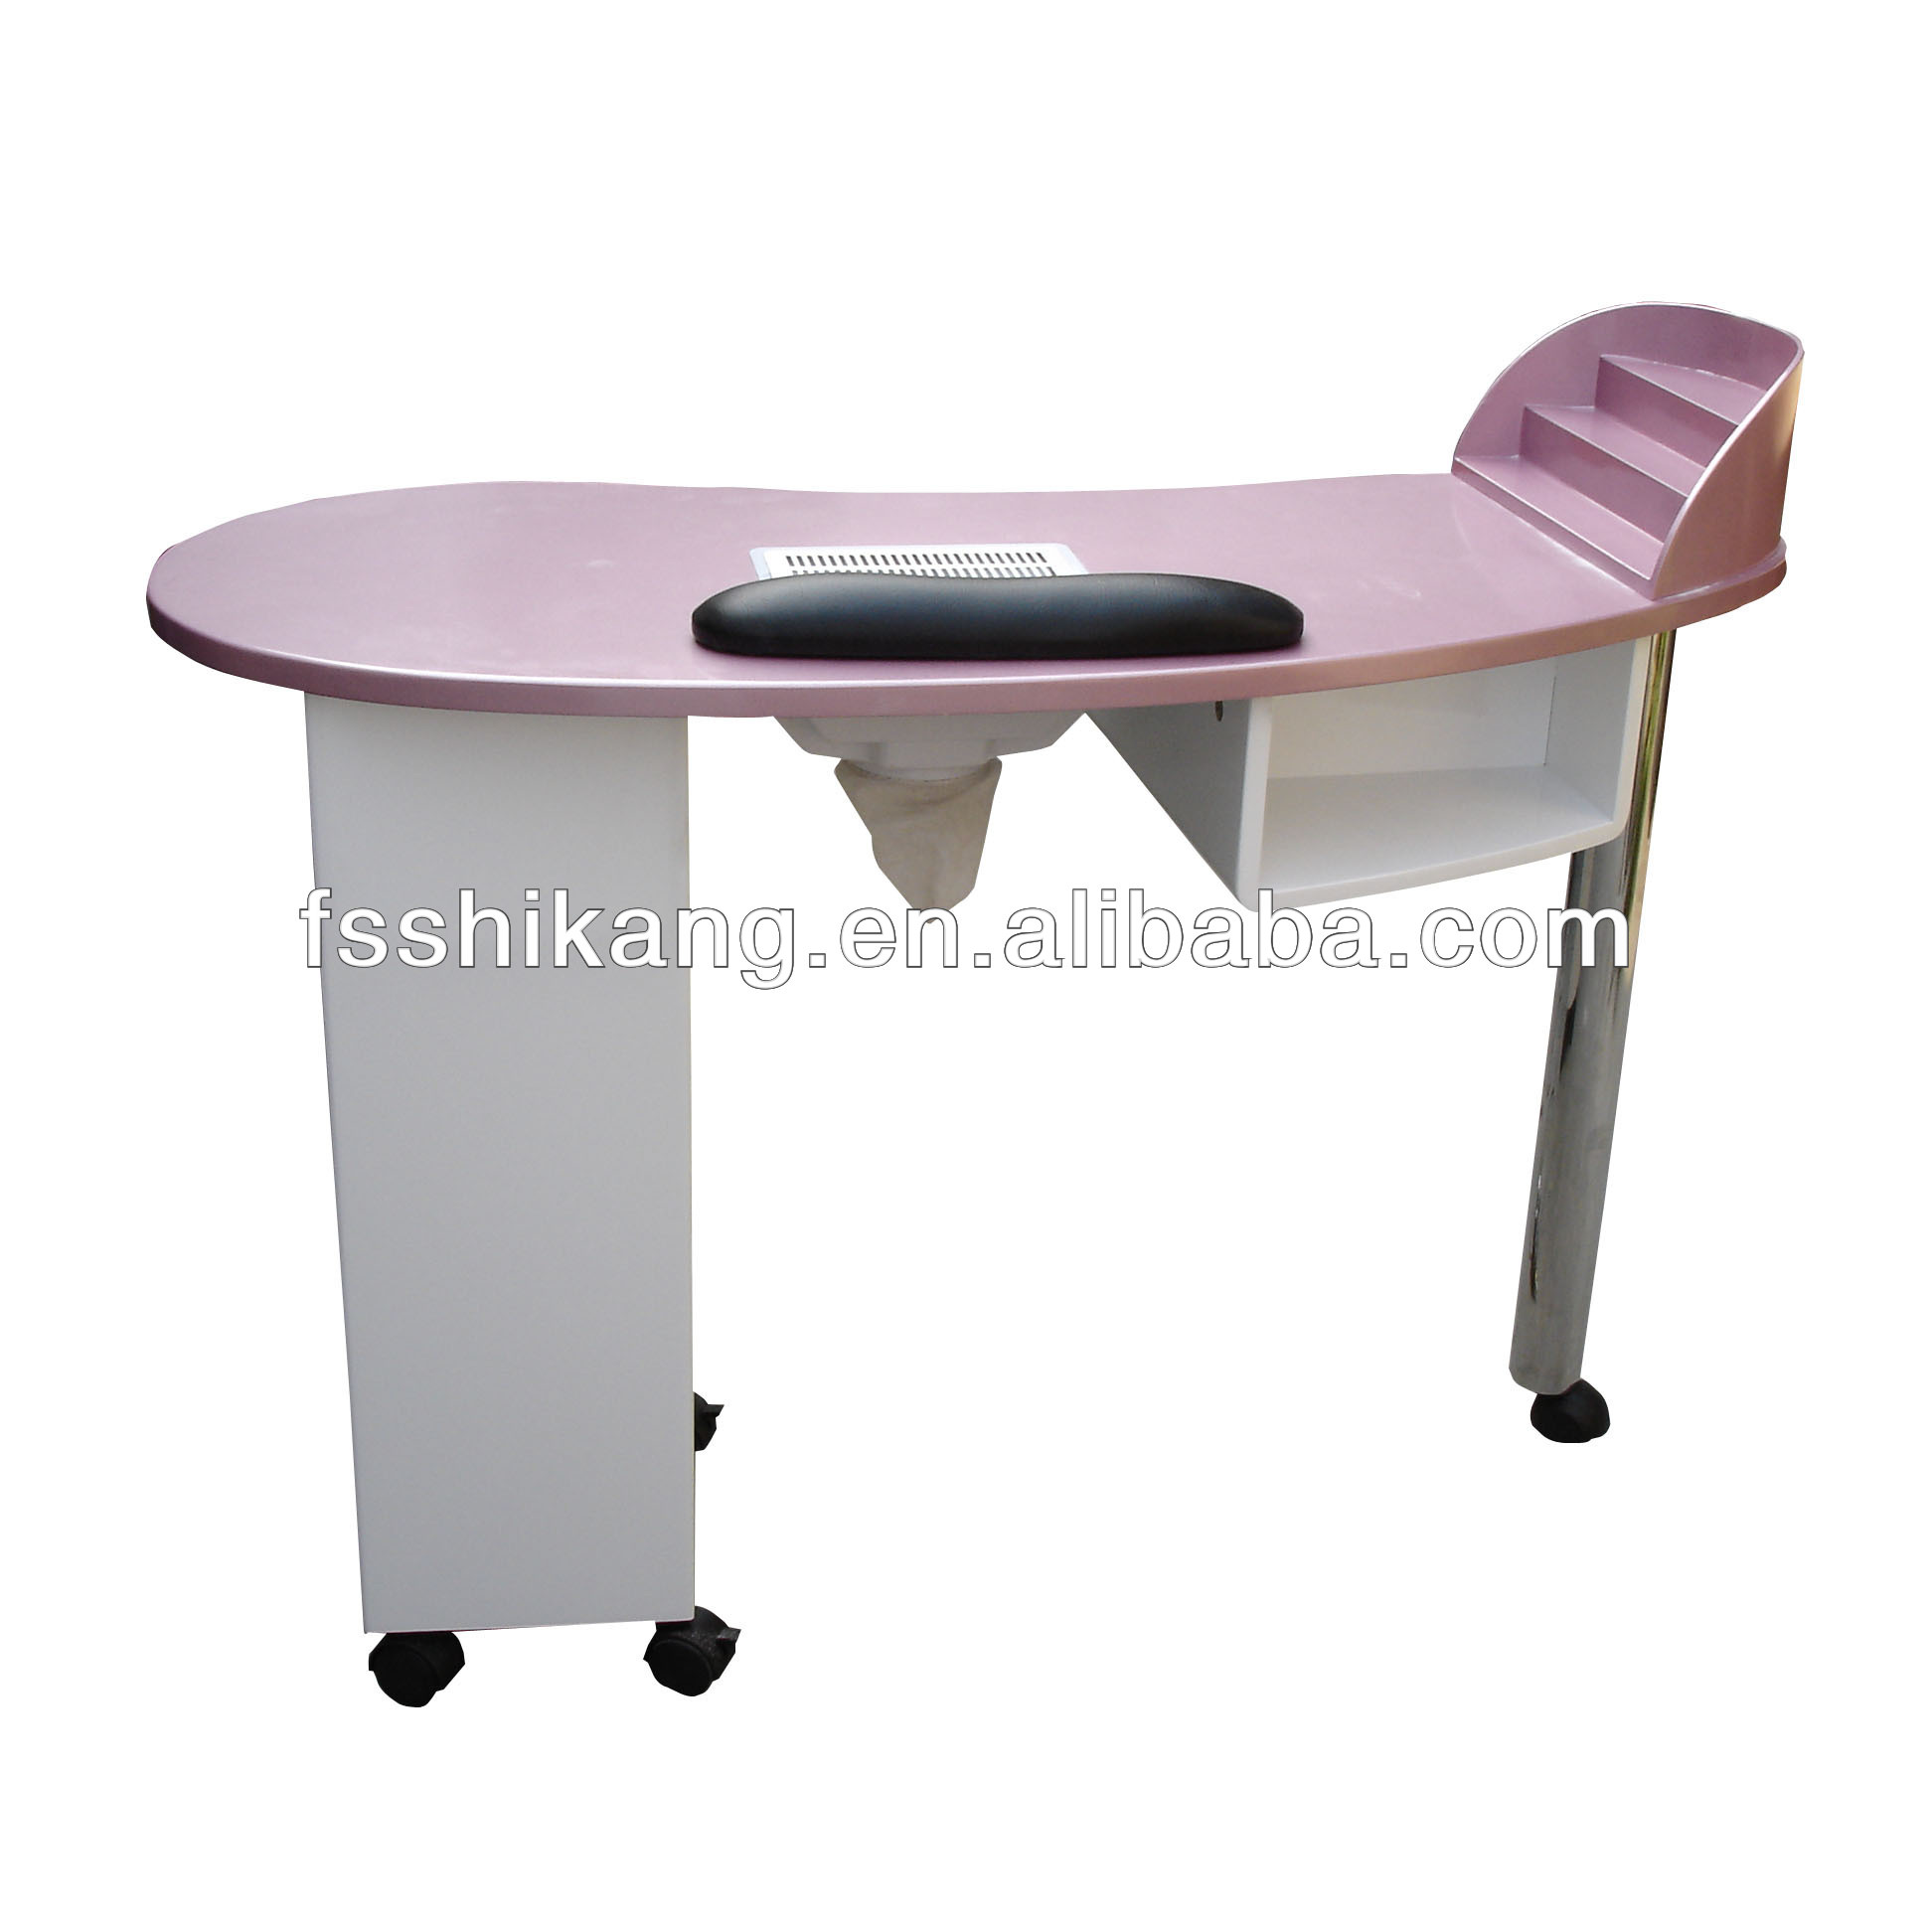 table p daina tables manicure